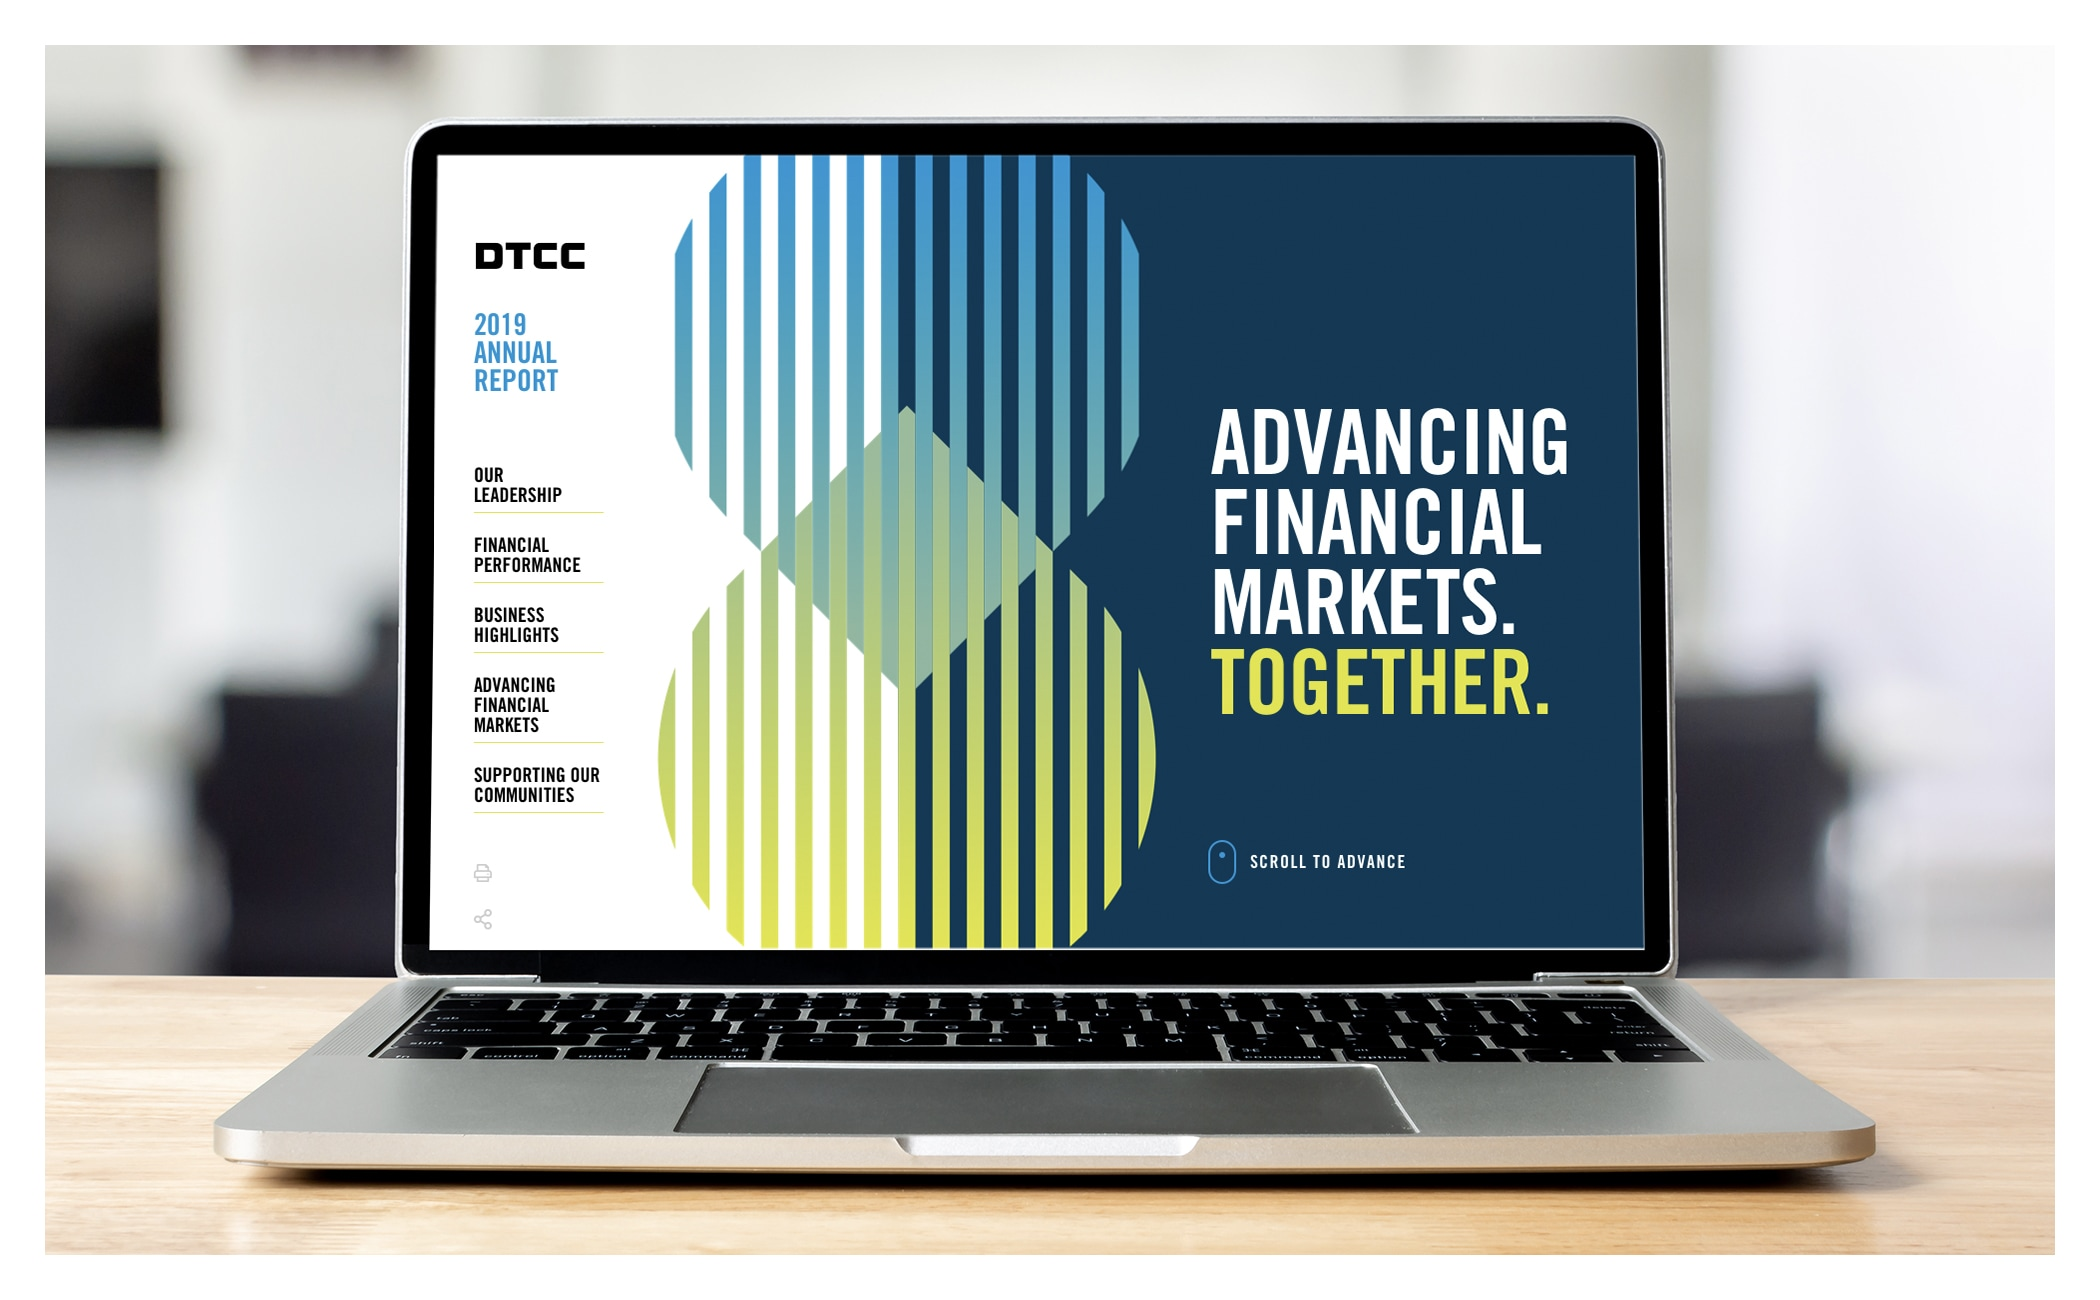 Image of the 2019 DTCC Annual Report on a laptop screen